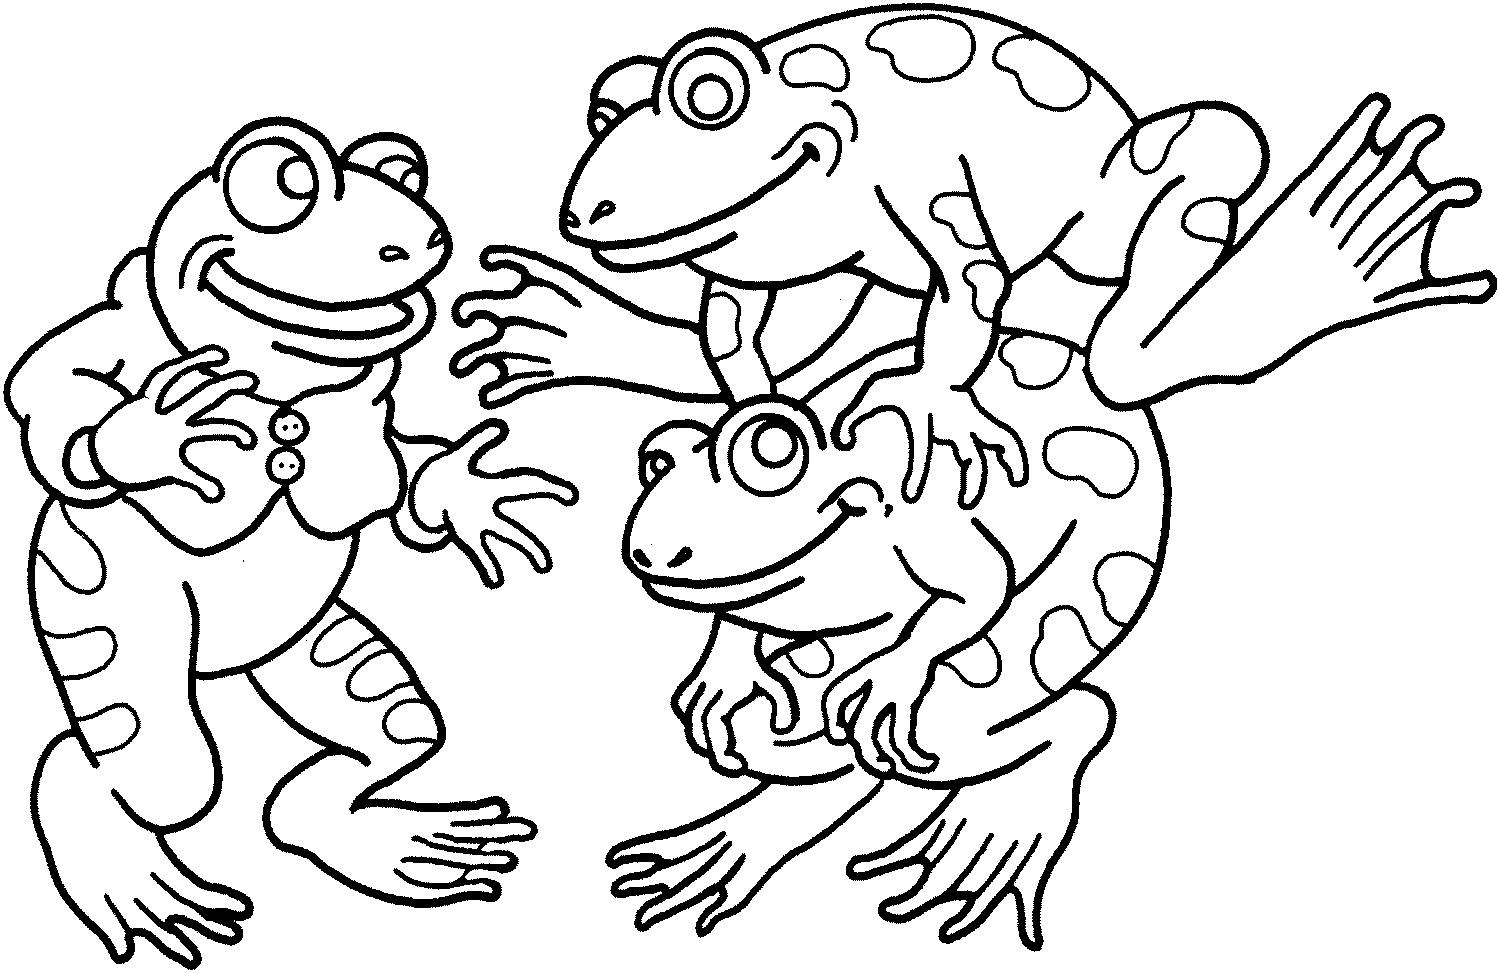 frog color page for kids